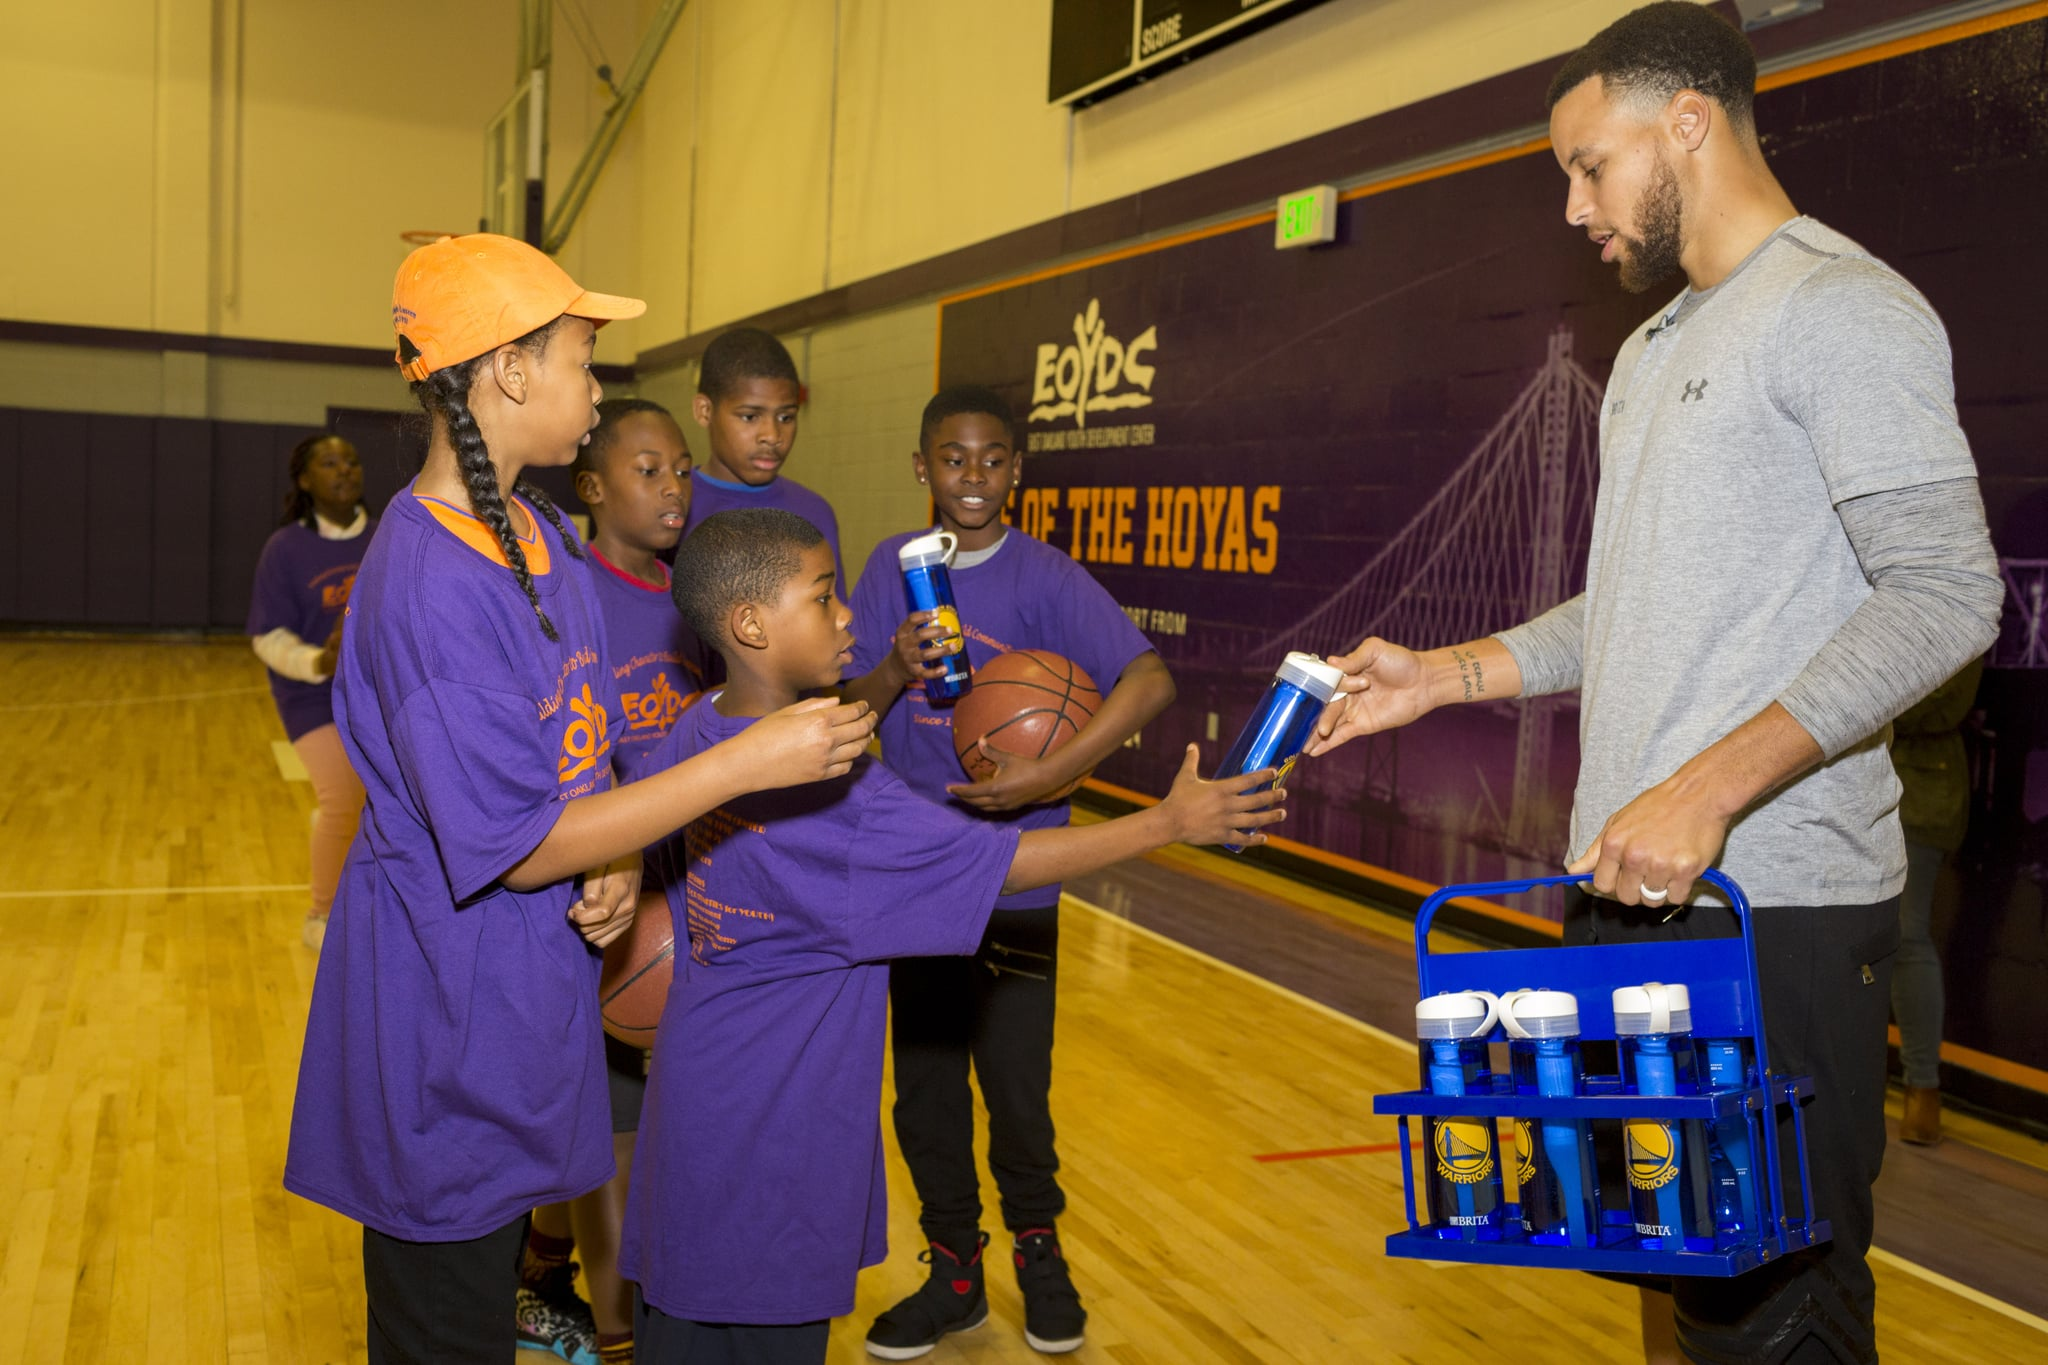 At an event announcing the Filter for the Future Grant Program, an effort to help schools limit bottled water waste,  superstar Stephen Curry handed out water to children playing a pick-up game at the East Oakland Youth Development Center Friday, March 30, 2018 in Oakland, Calif. (Eric Kayne/AP Images for Brita-Filter)